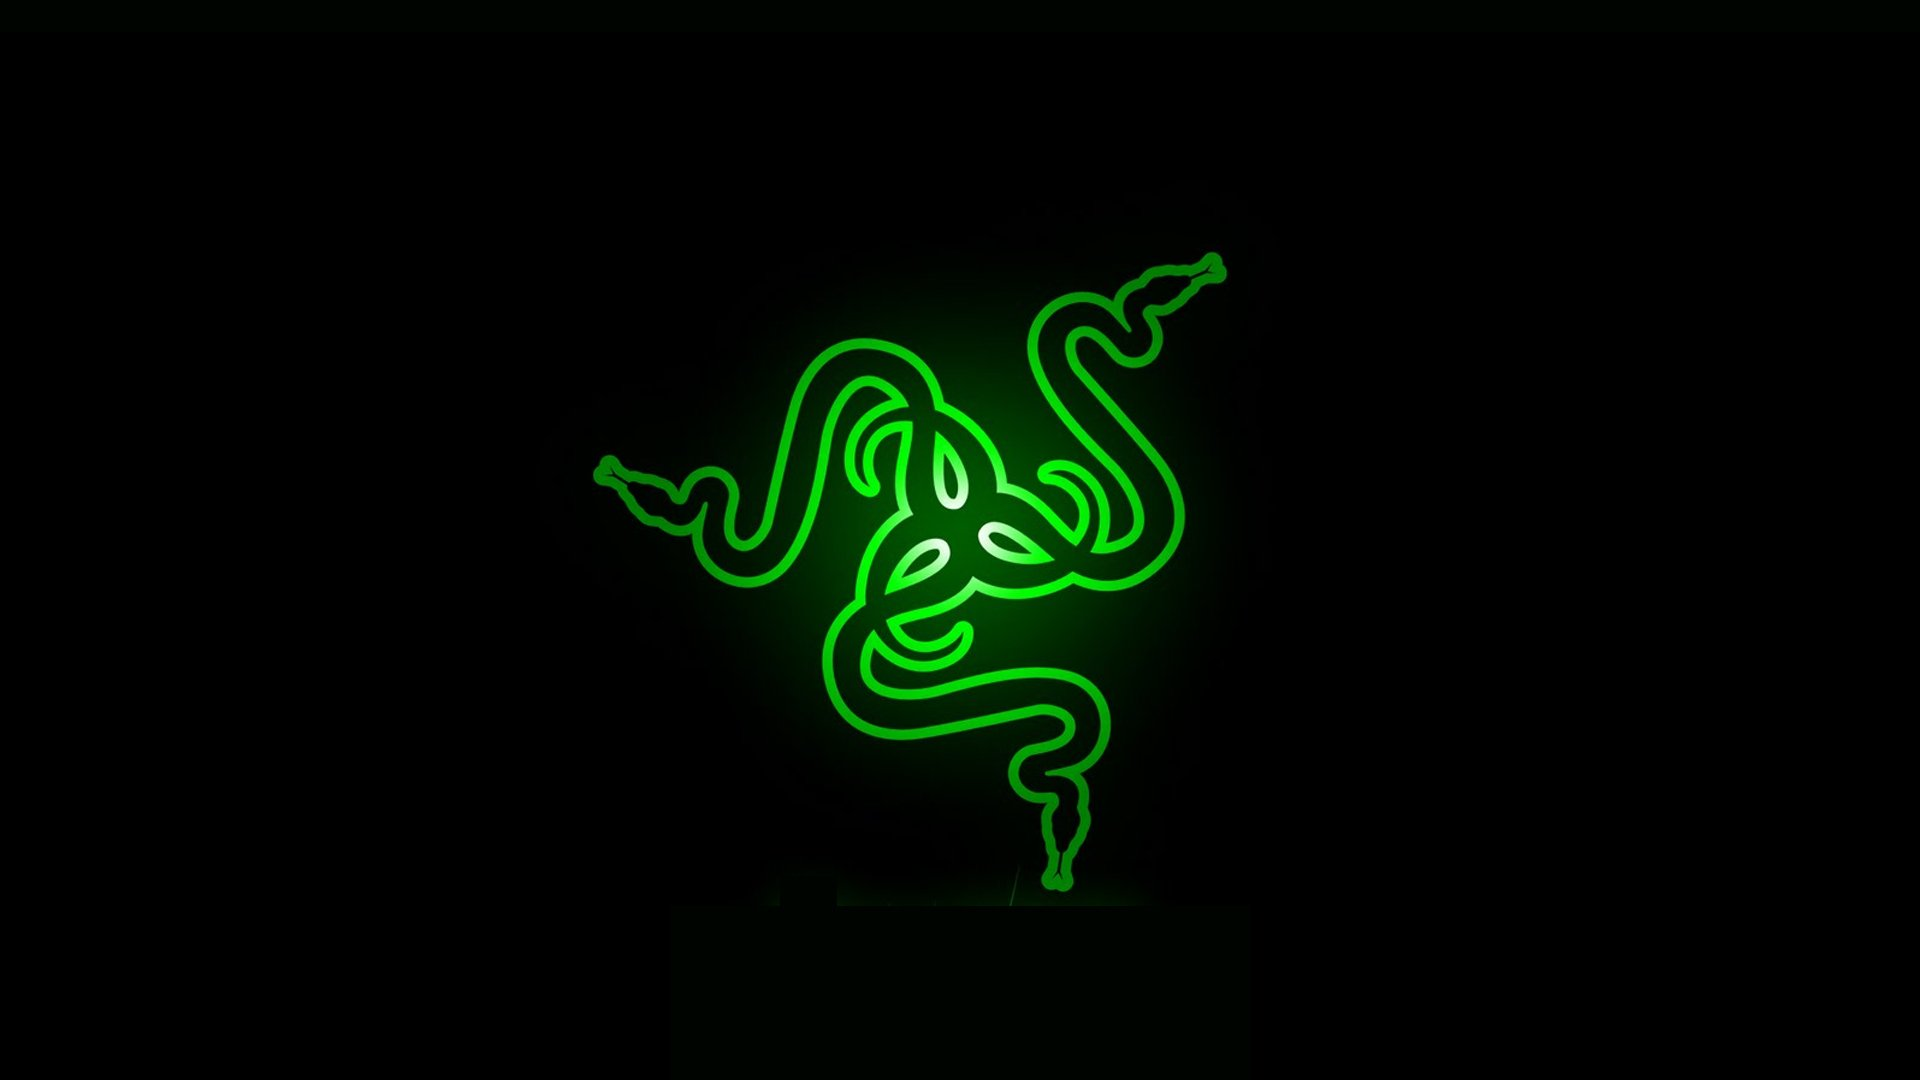 RAZER GAMING computer game wallpaper background 1920x1080